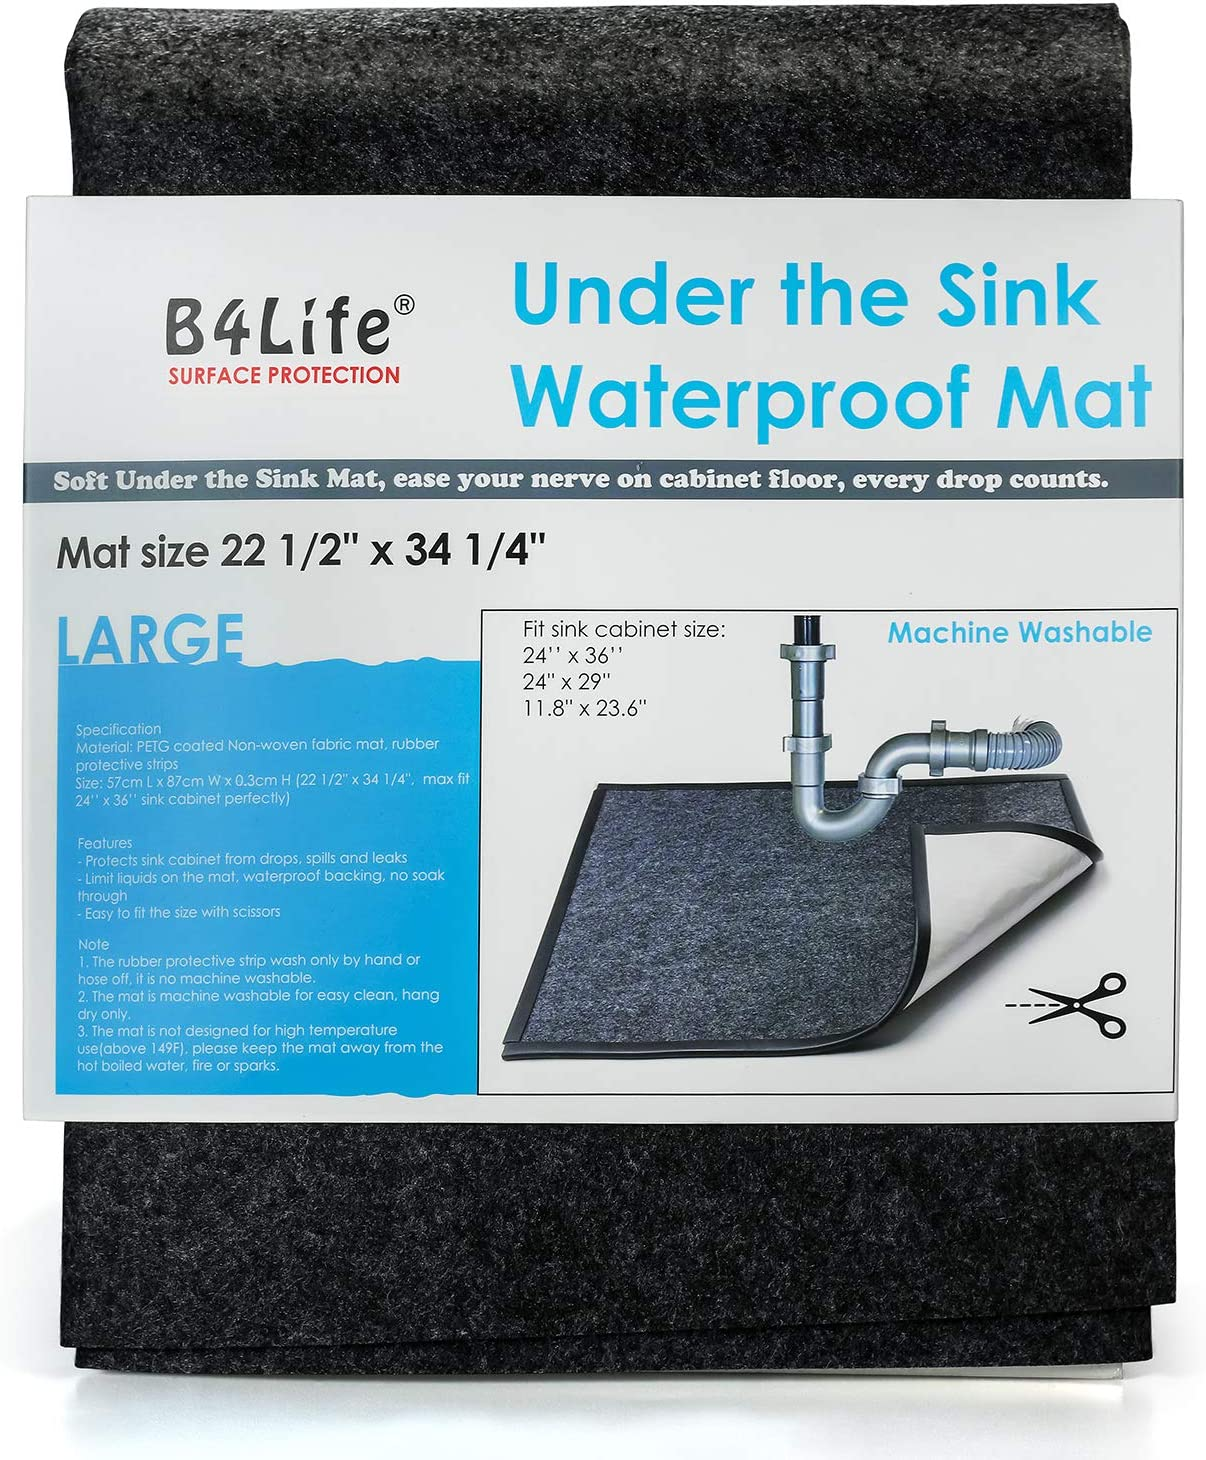 Amazon Com B4life Under Sink Mat Kitchen Cabinet Liner Fits 24 X 36 Cabinet Large Waterproof Mat With Rubber Strip Protects Cabinet Contains Liquids Absorbent Washable Durable Black Home Improvement